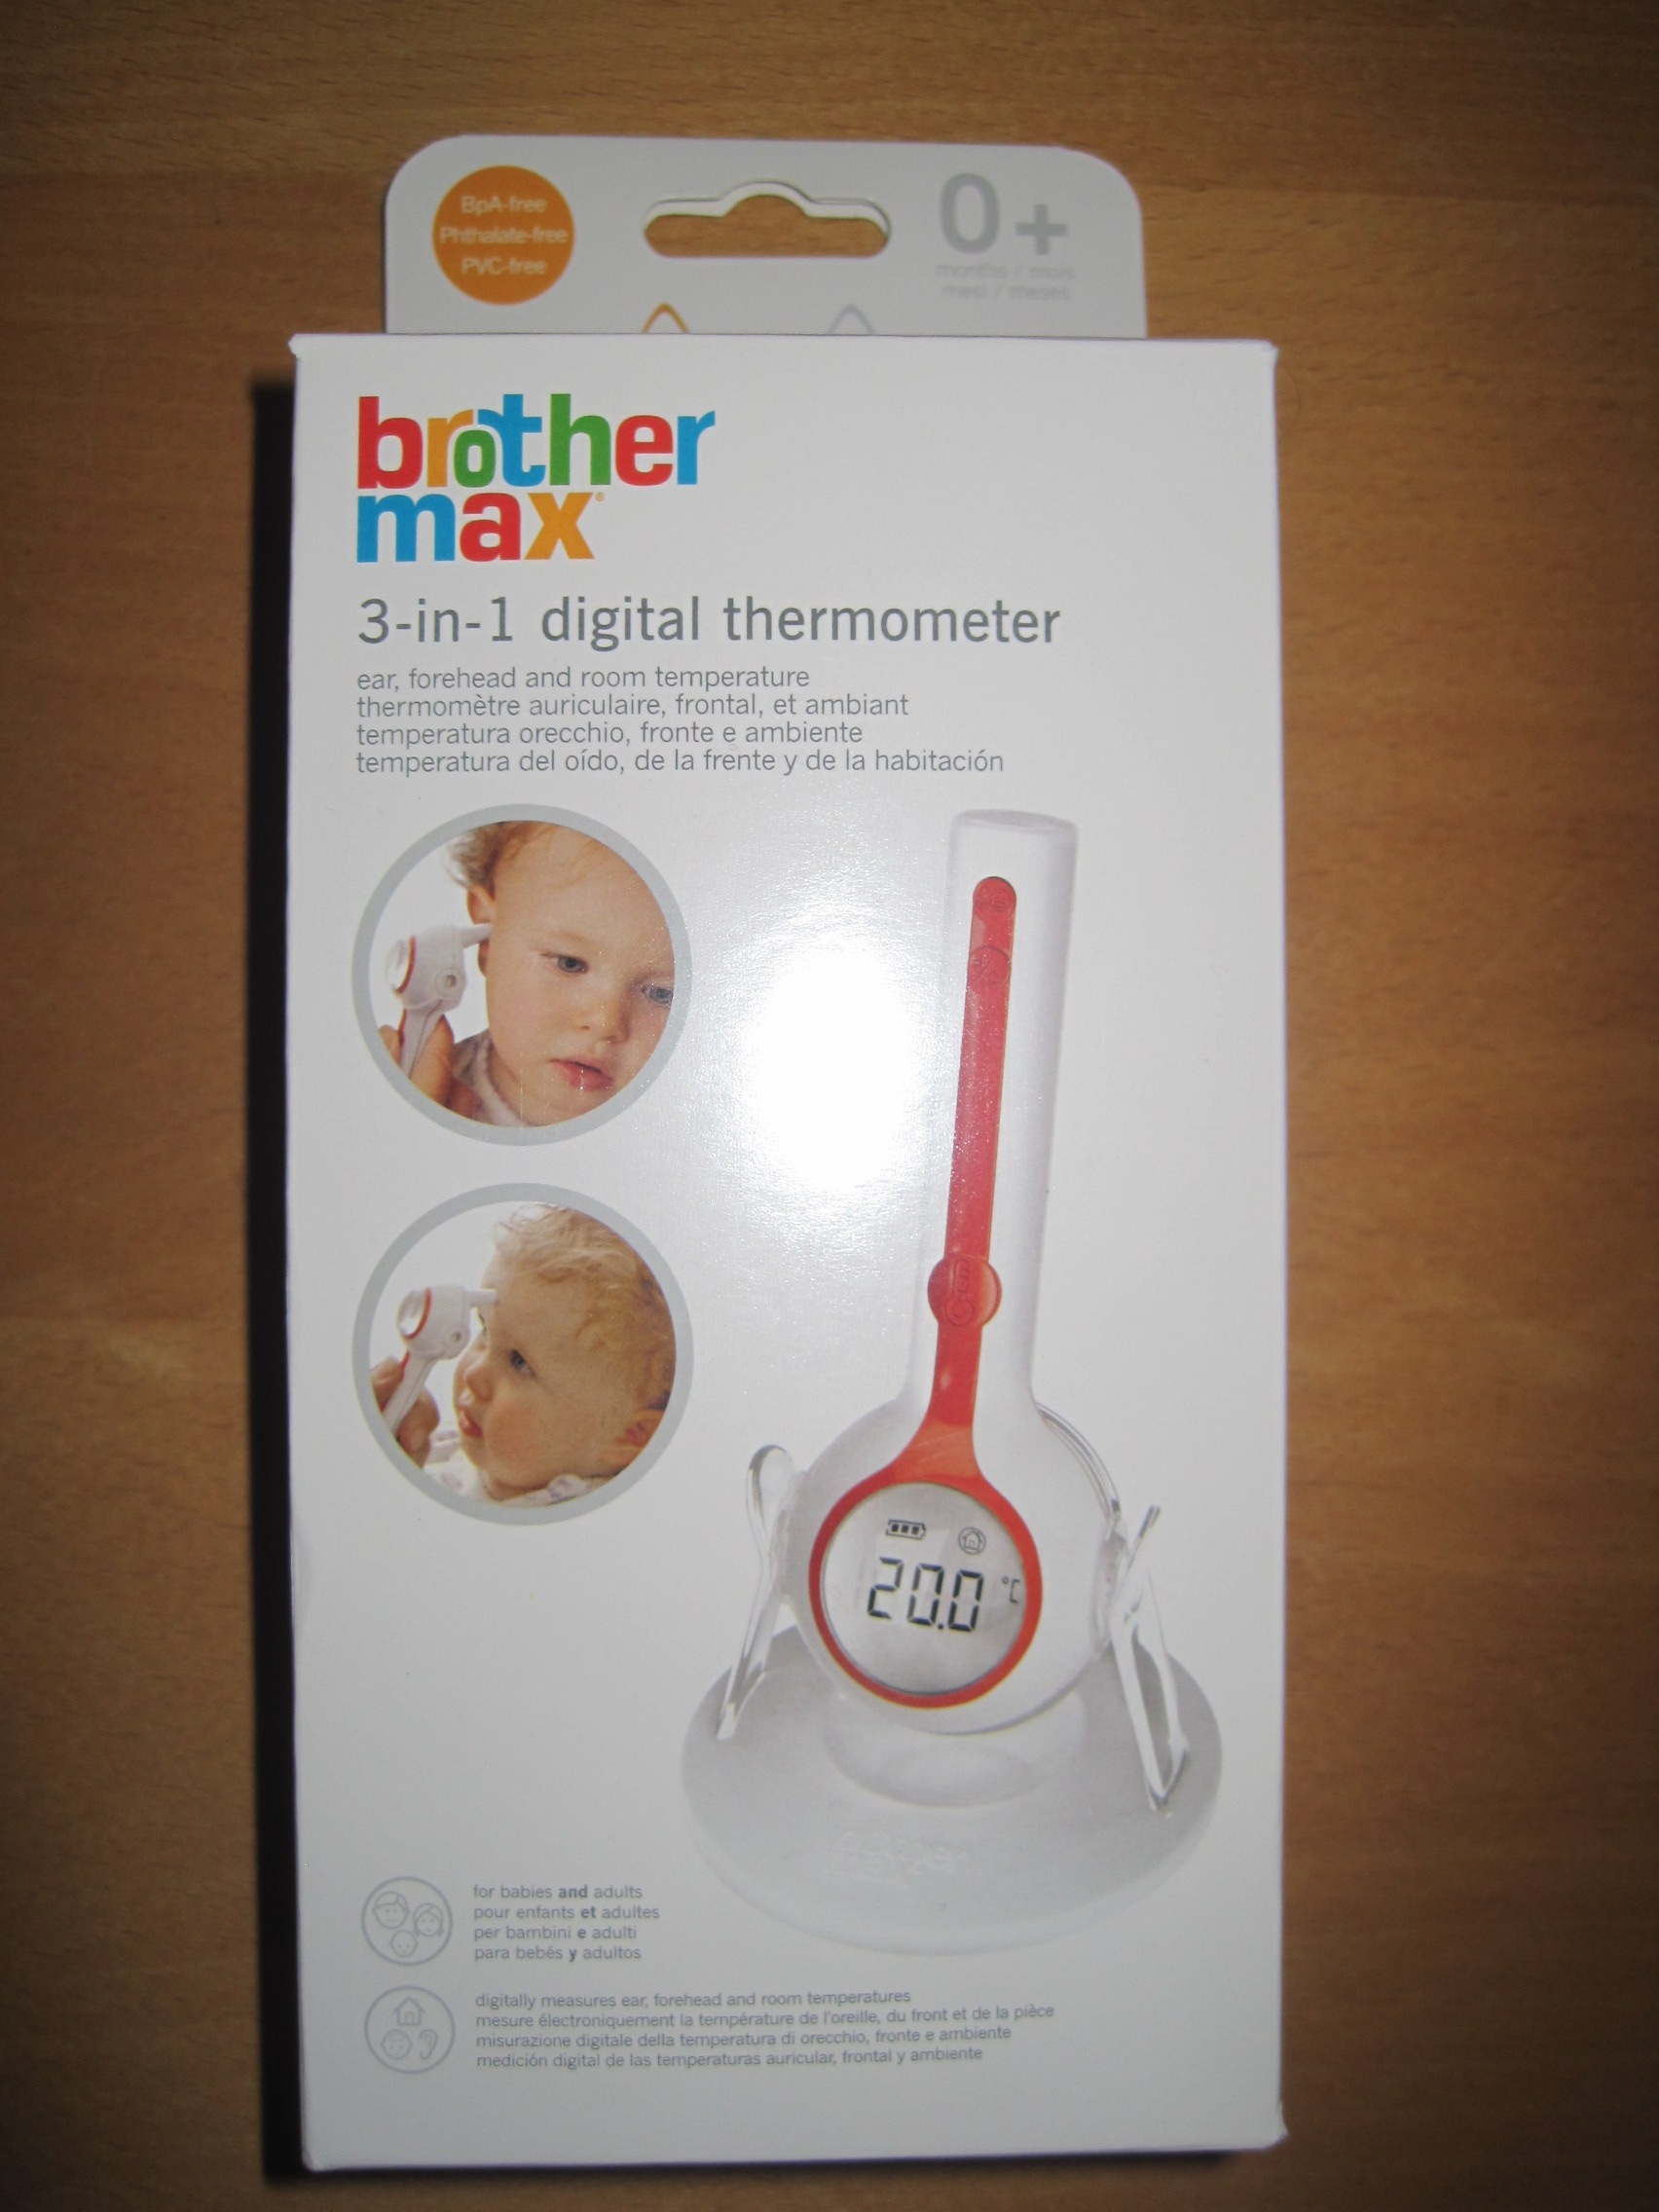 brother max 3-in-1 thermometer